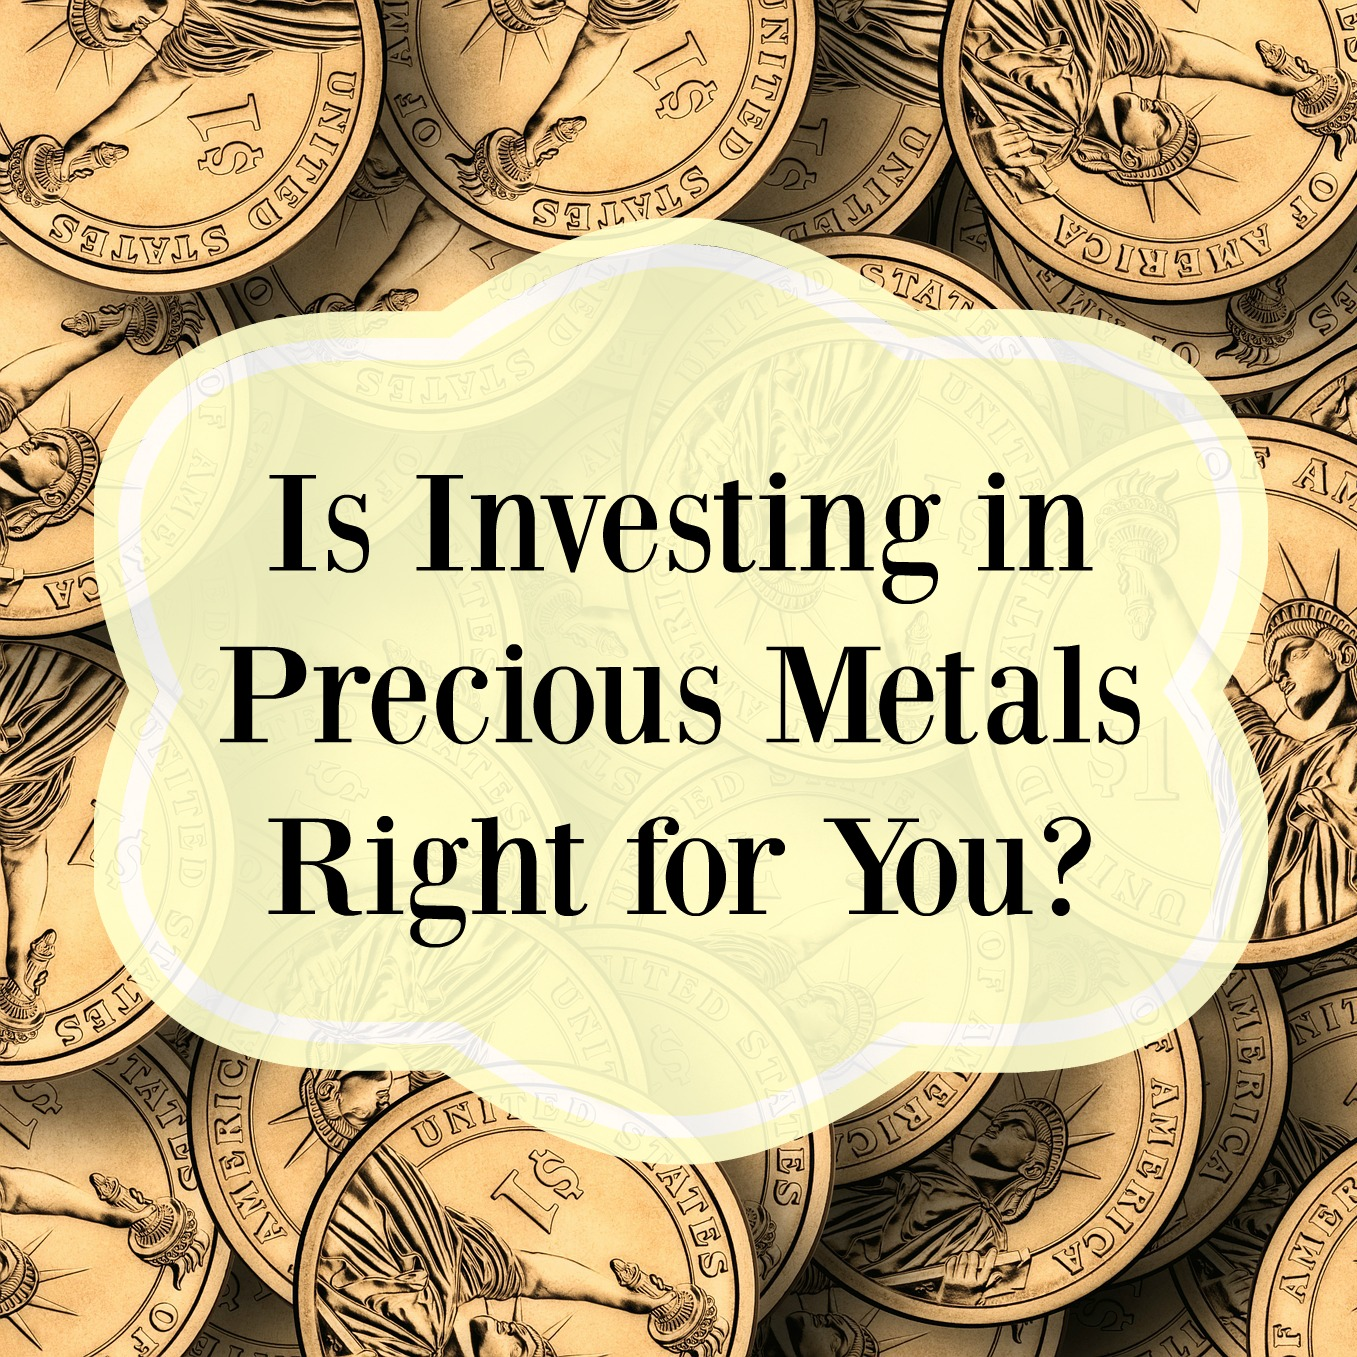 Is Investing in Precious Metals Right for You?